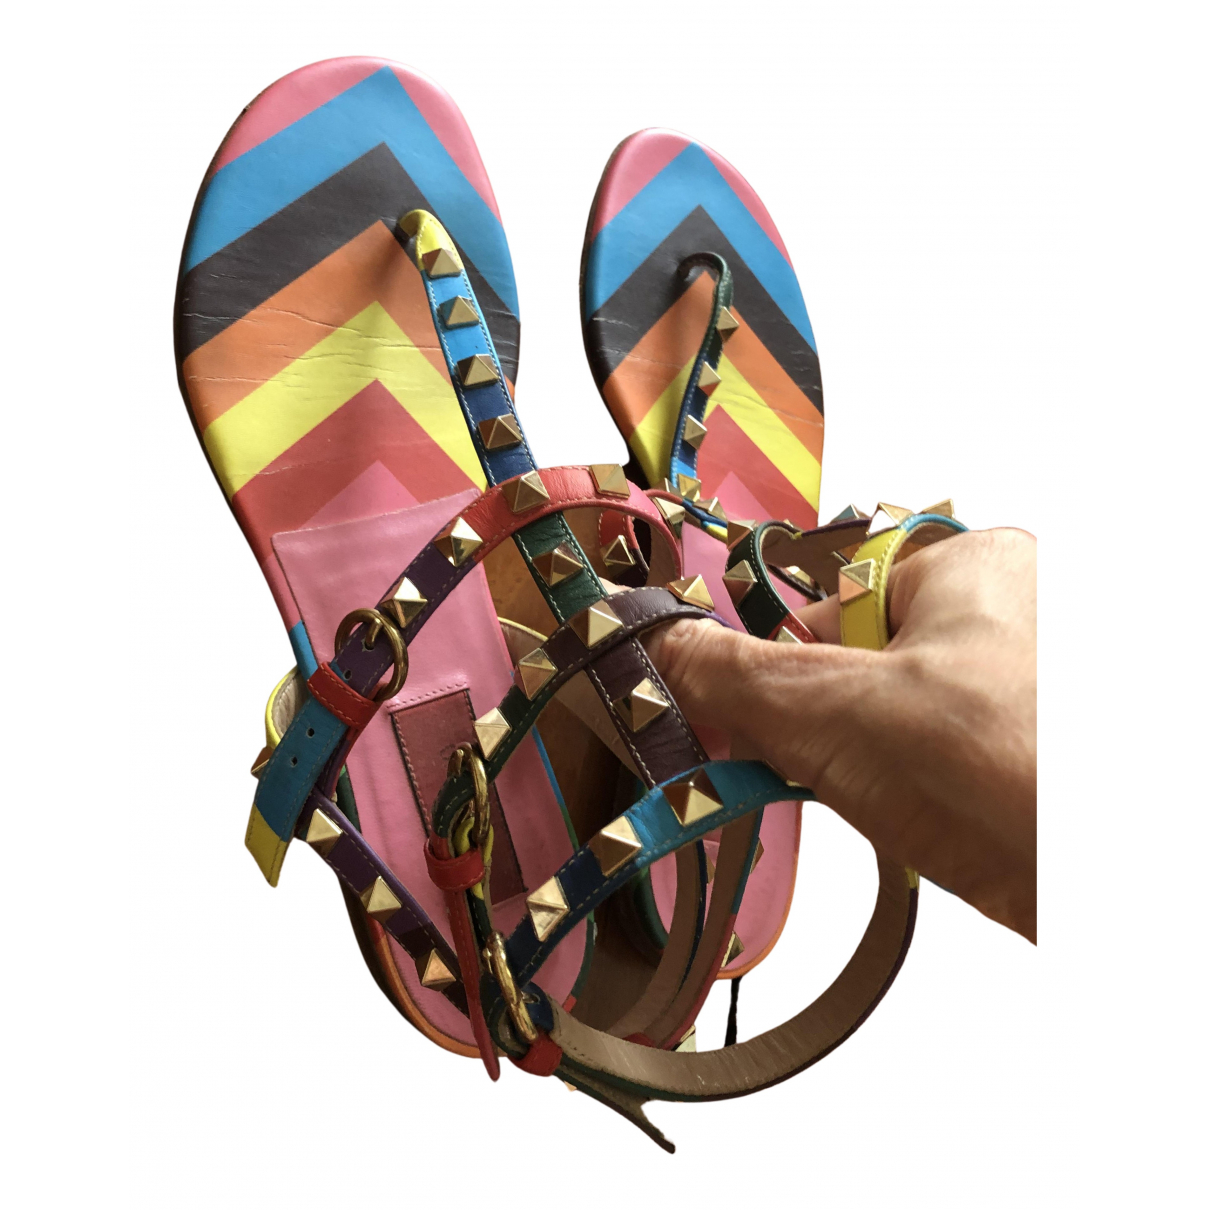 Valentino Garavani Rockstud Multicolour Leather Sandals for Women 38 IT